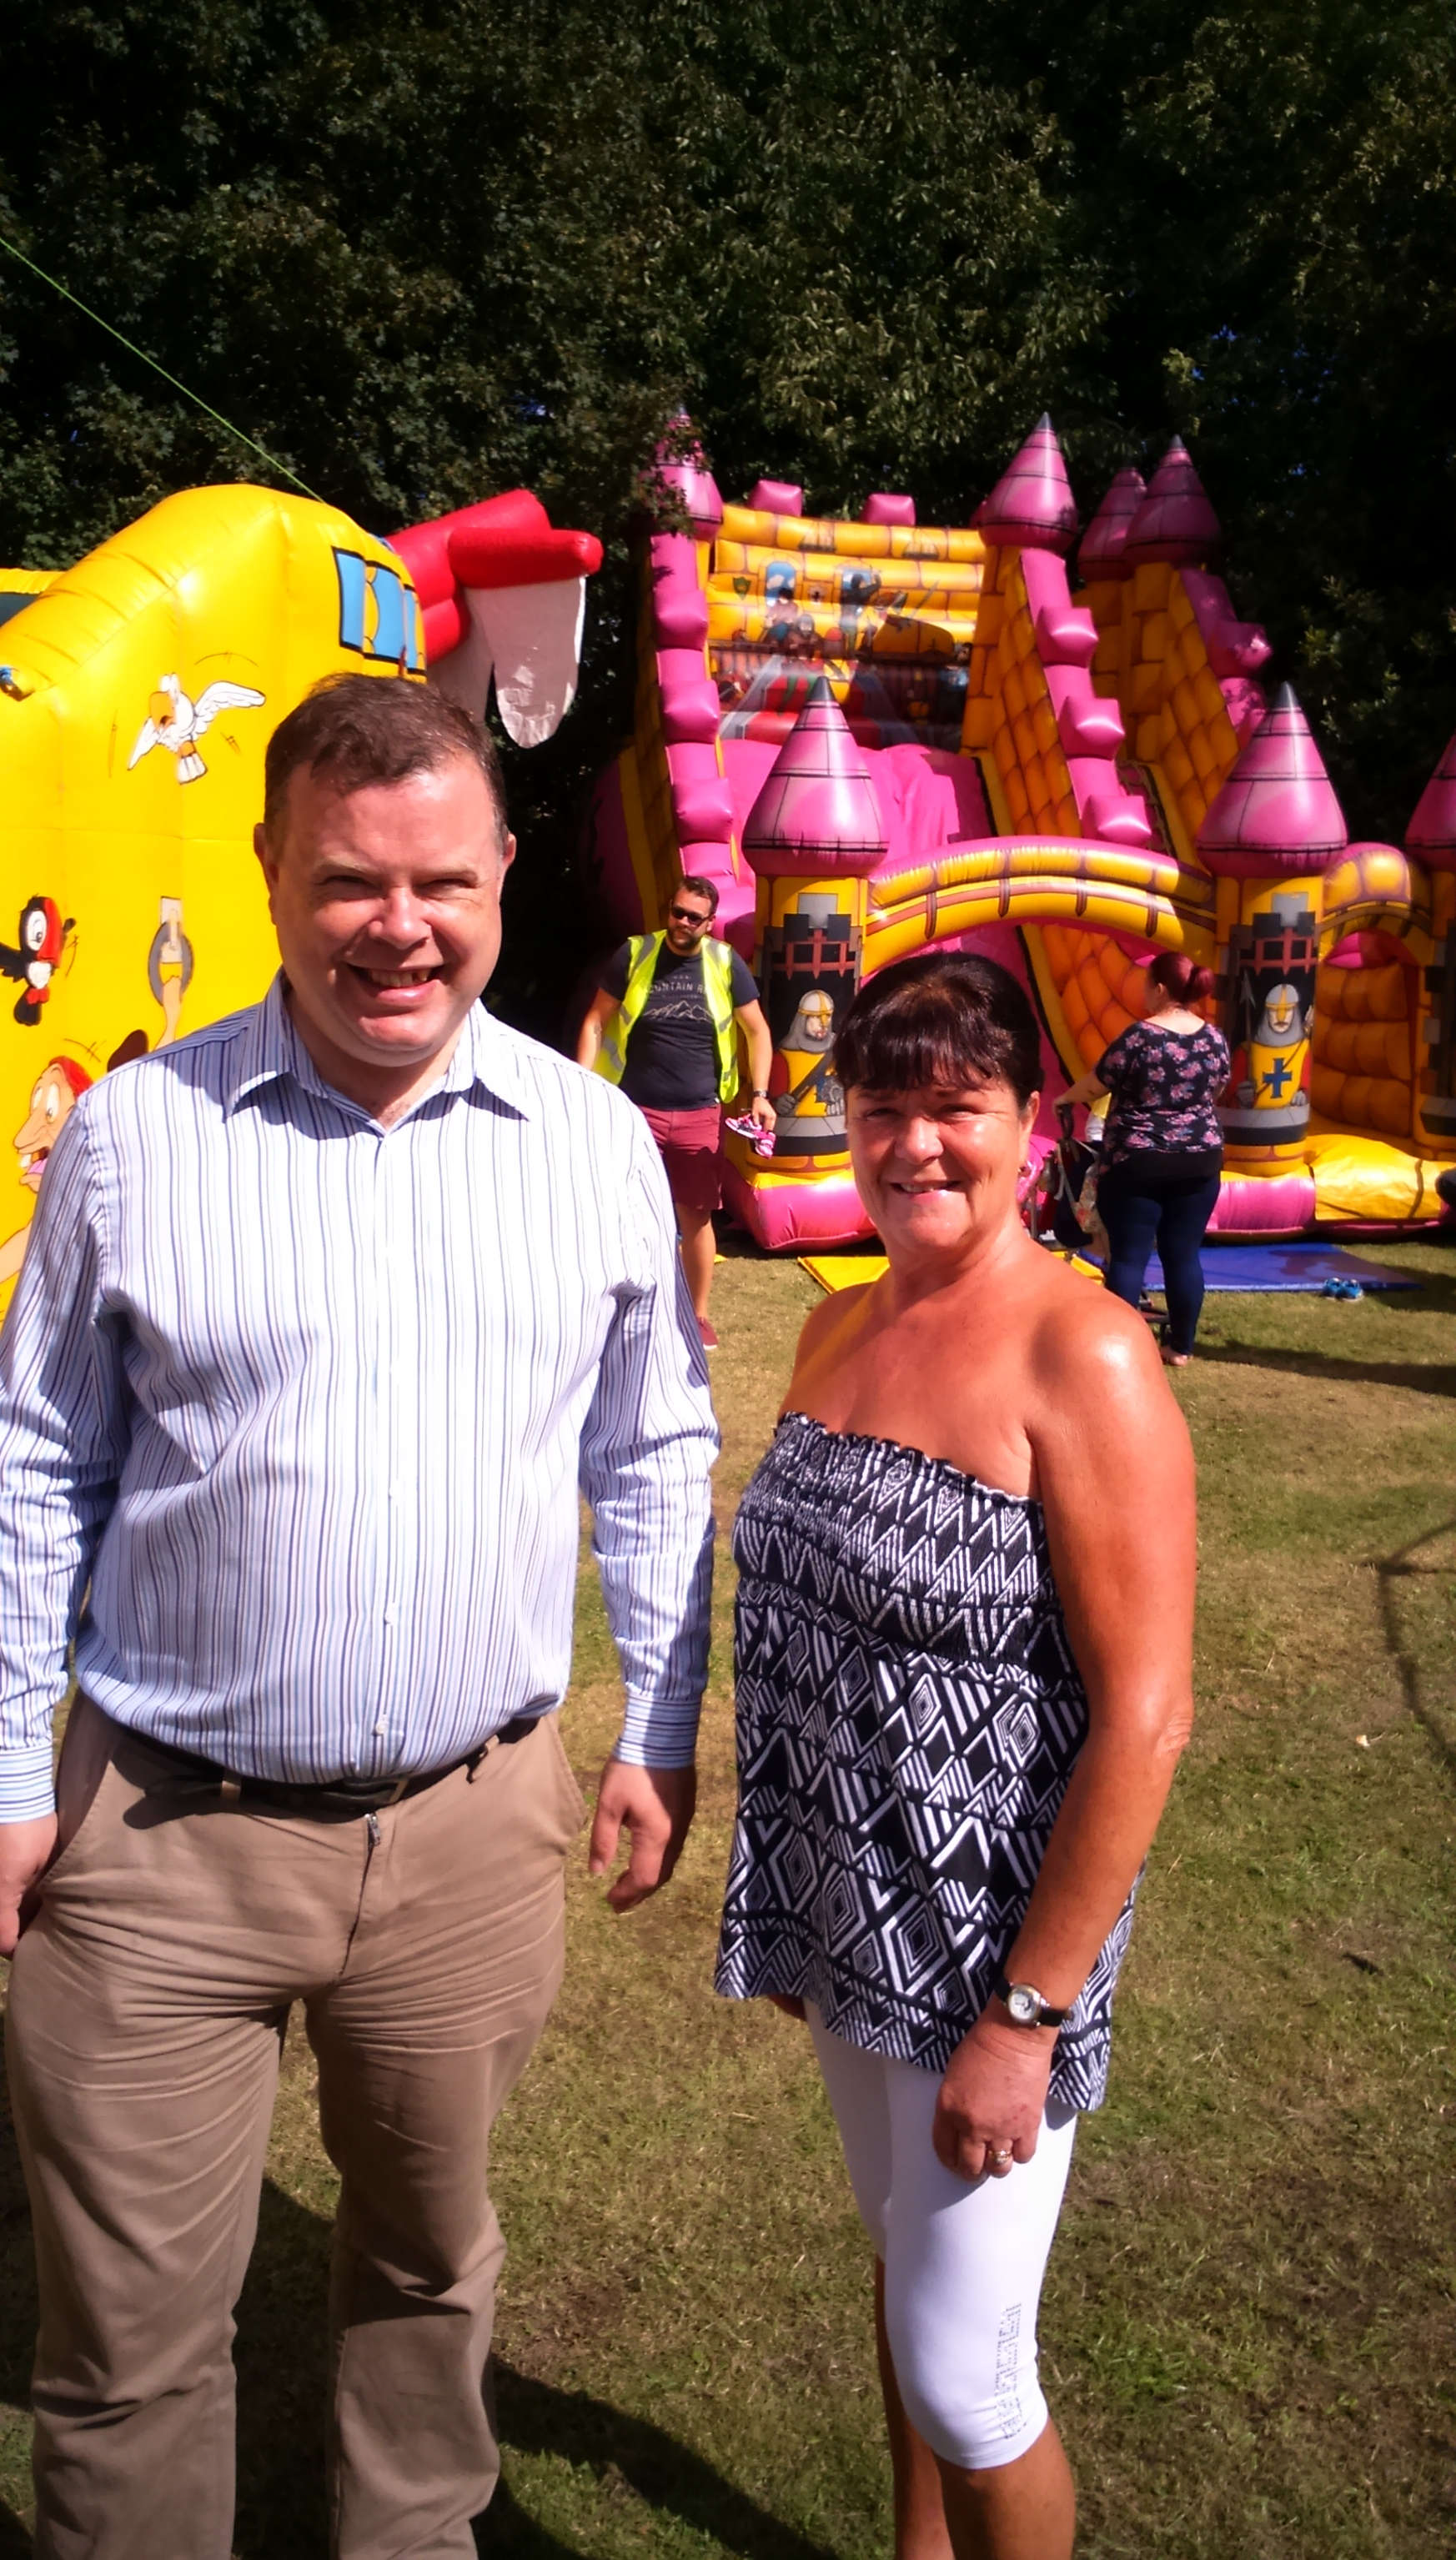 Andrew and Sheena visit the children's bouncy castles